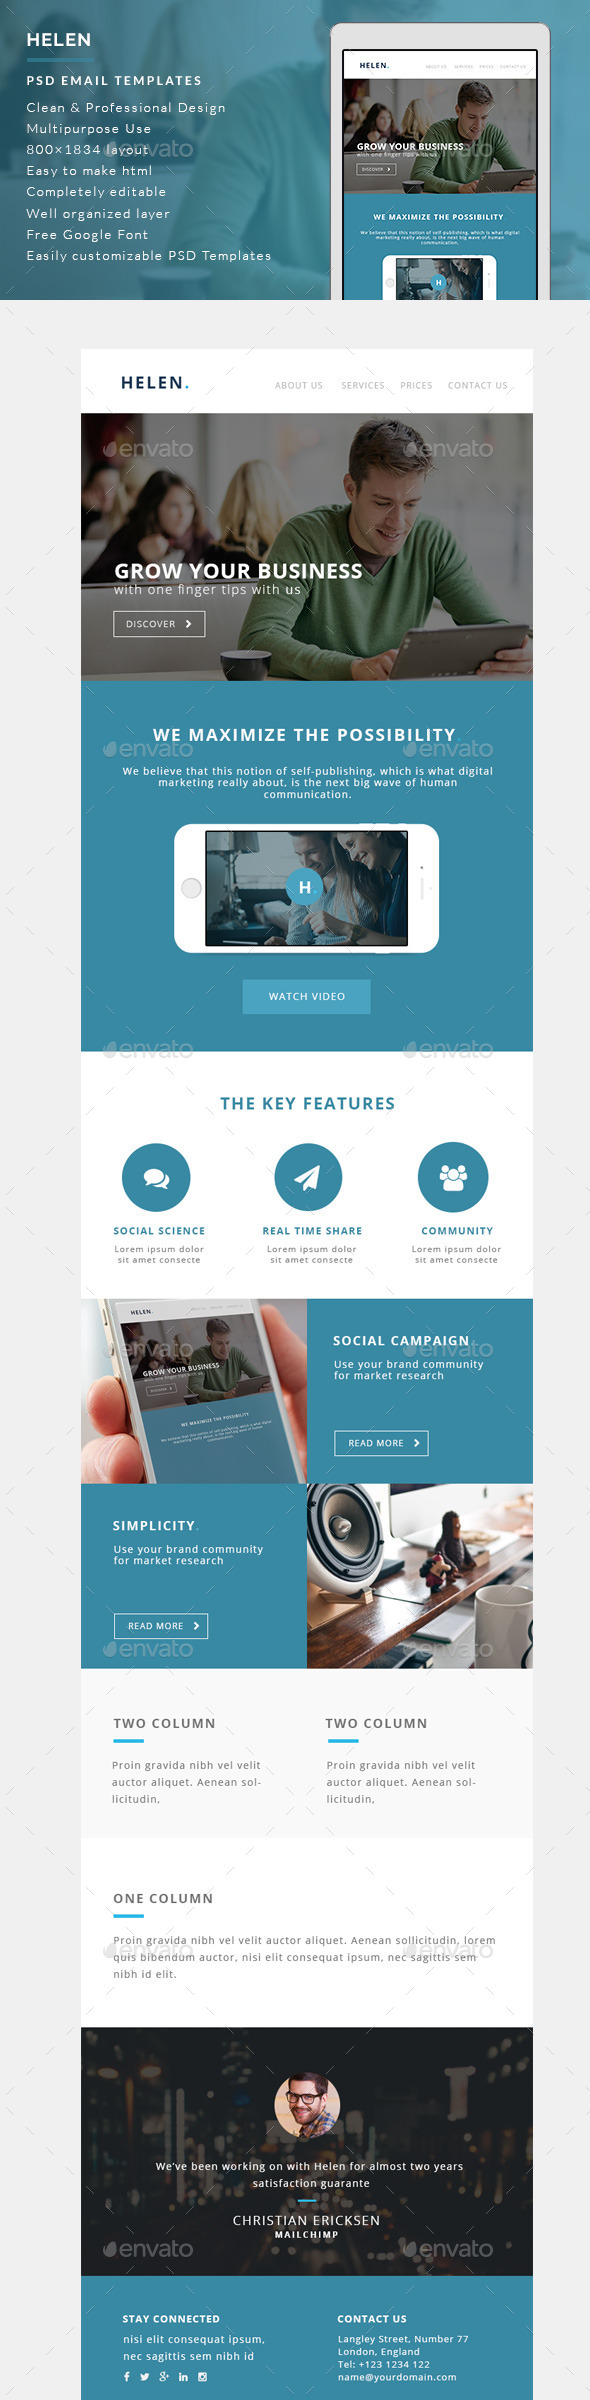 Corporate Email Templates - Helen - E-newsletters Web Elements